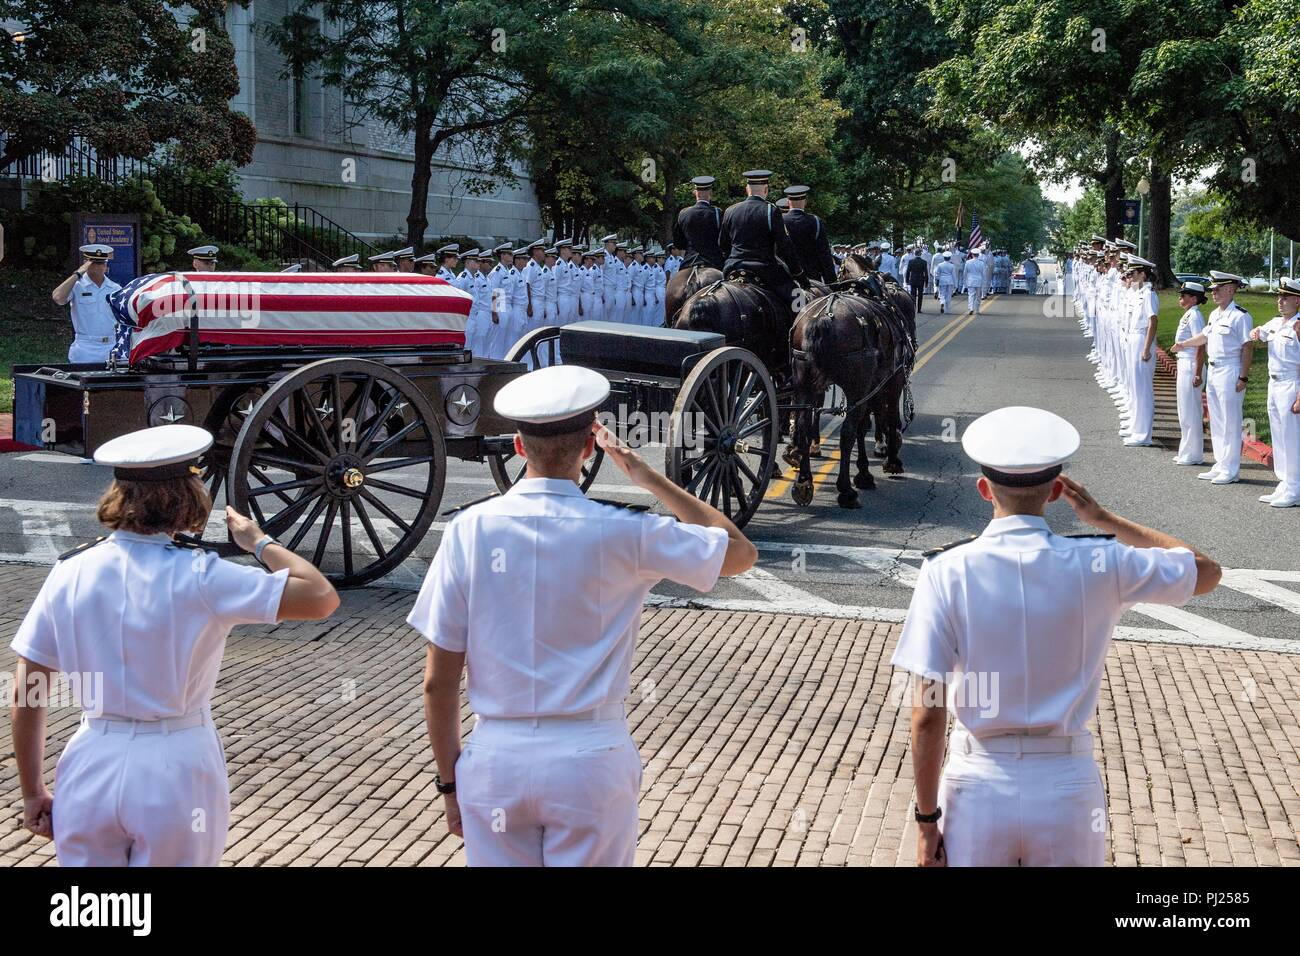 Midshipmen salute as the flag draped casket of Sen. John McCain as a horse-drawn caisson processes to the United States Naval Academy Cemetery for his burial service September 2, 2018 in Annapolis, Maryland. John S. McCain, III graduated from the United States Naval Academy in 1958. He was a pilot in the United States Navy, a prisoner of war in Vietnam, a Congressmen and Senator and twice presidential candidate. He received numerous awards, including the Silver Star, Legion of Merit, Purple Heart, and Distinguished Flying Cross. - Stock Image